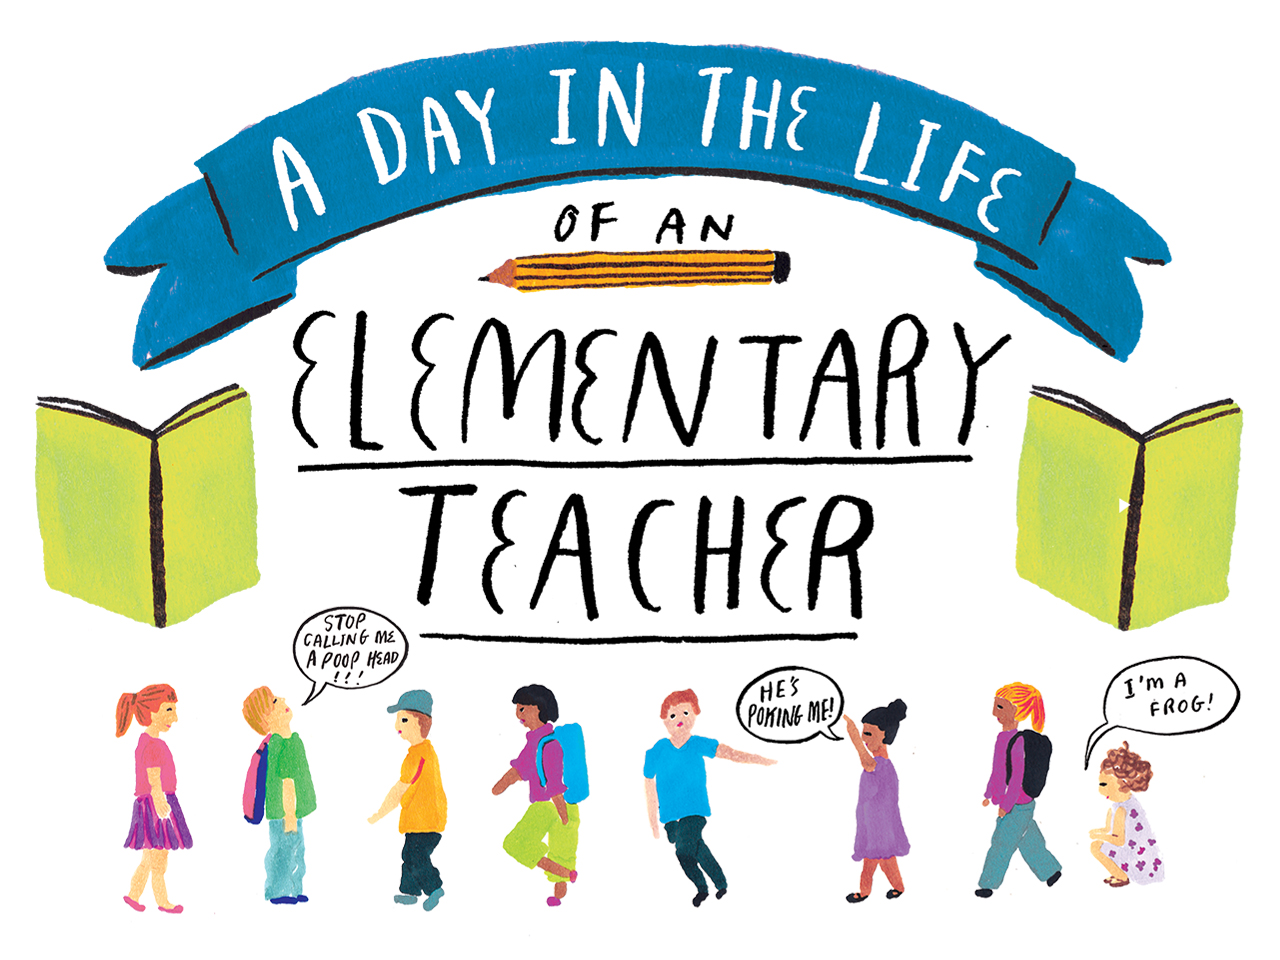 A day in the life of an elementary teacher.